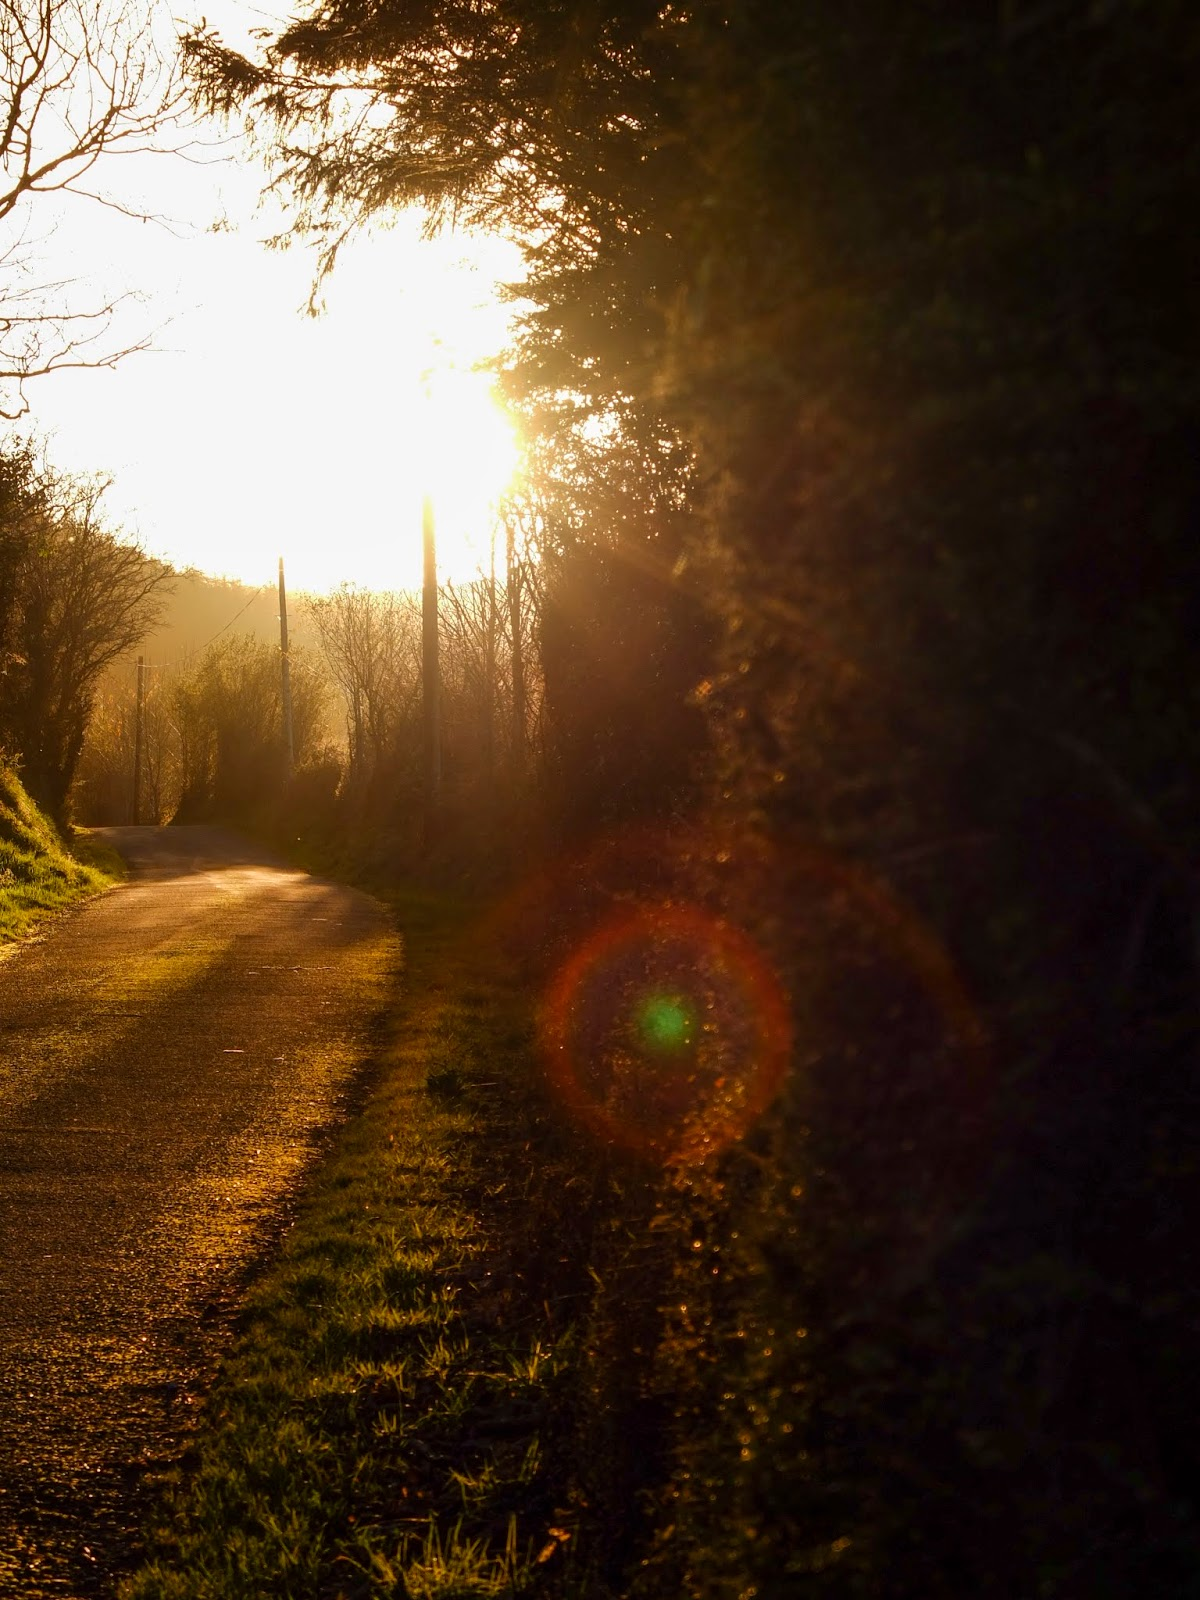 Sun casting a flare on a country side road during golden sunset hour.